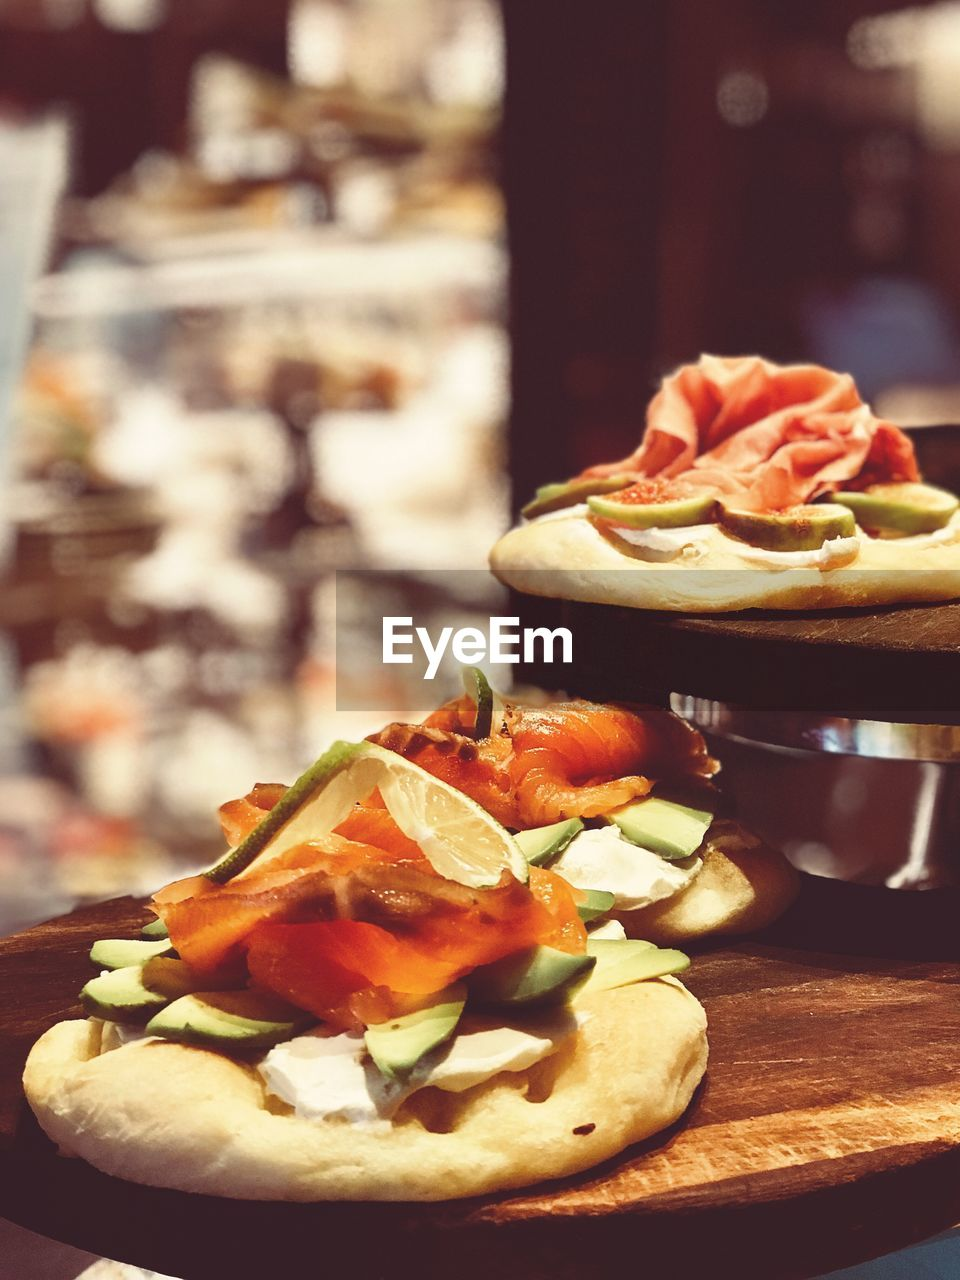 food and drink, food, freshness, table, ready-to-eat, focus on foreground, close-up, no people, indoors, fast food, sandwich, vegetable, plate, still life, healthy eating, bread, serving size, snack, restaurant